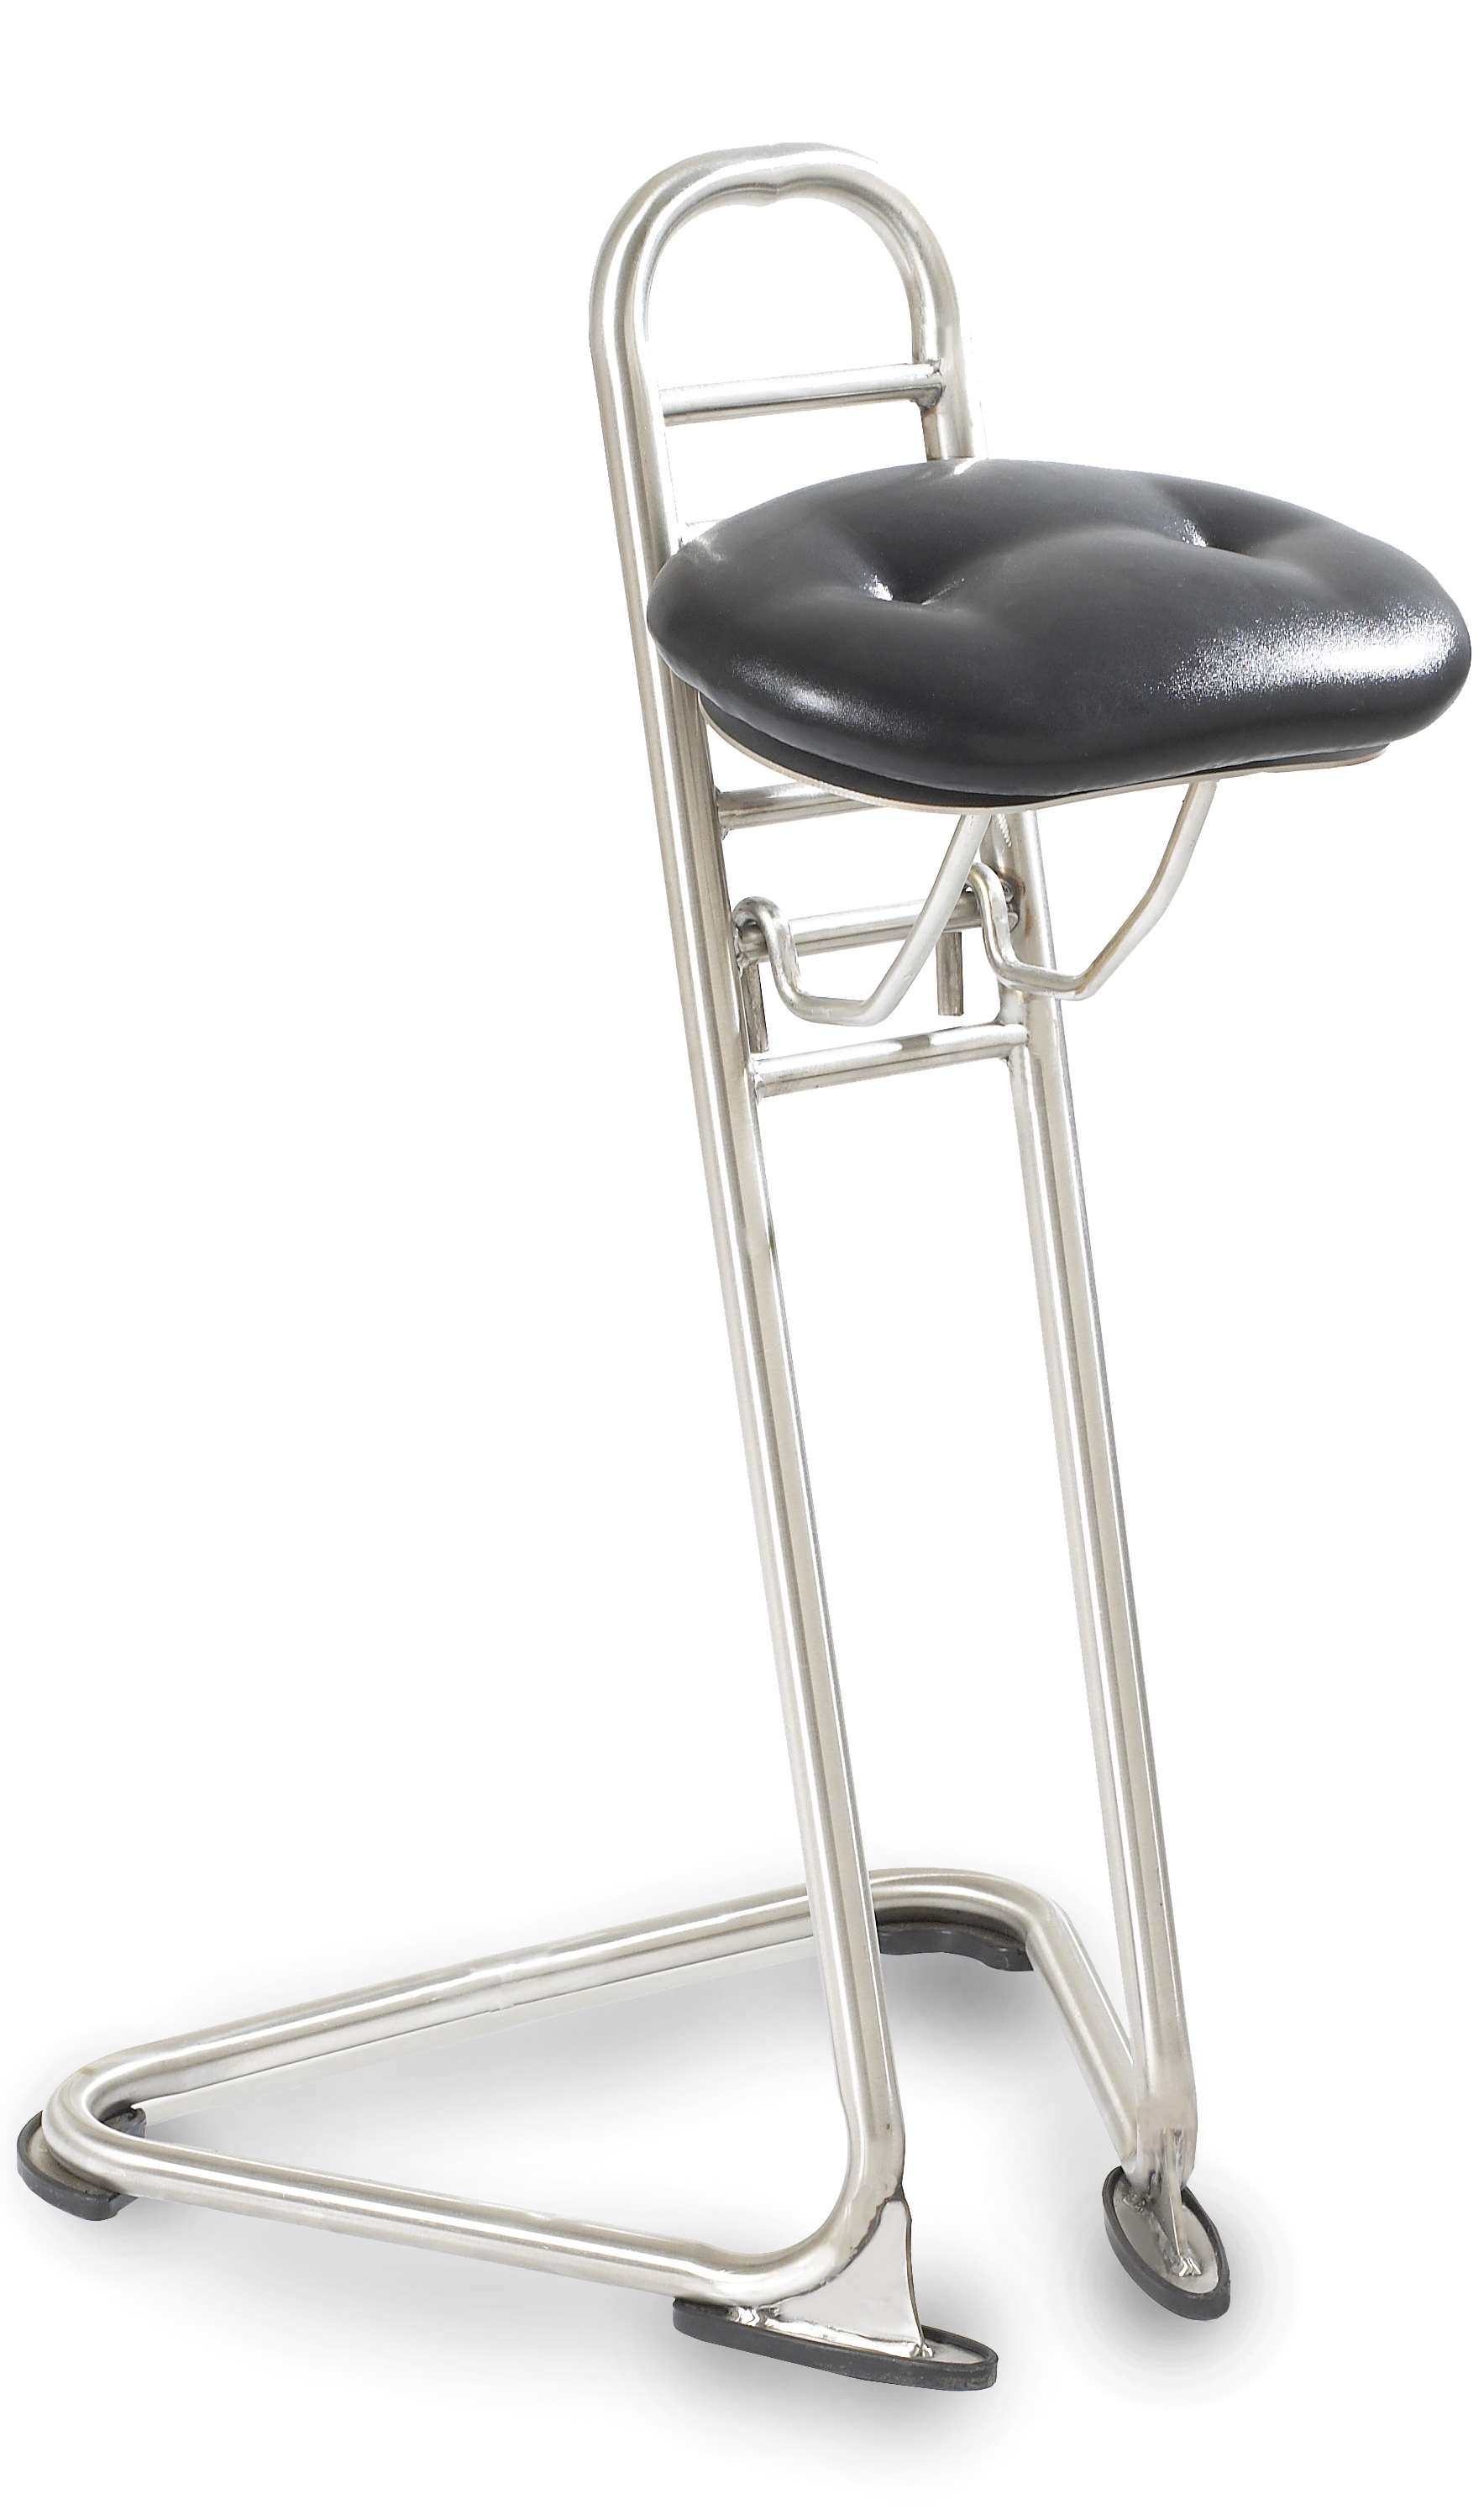 Sit Stand Stool Wash Down Stainless Steel Construction